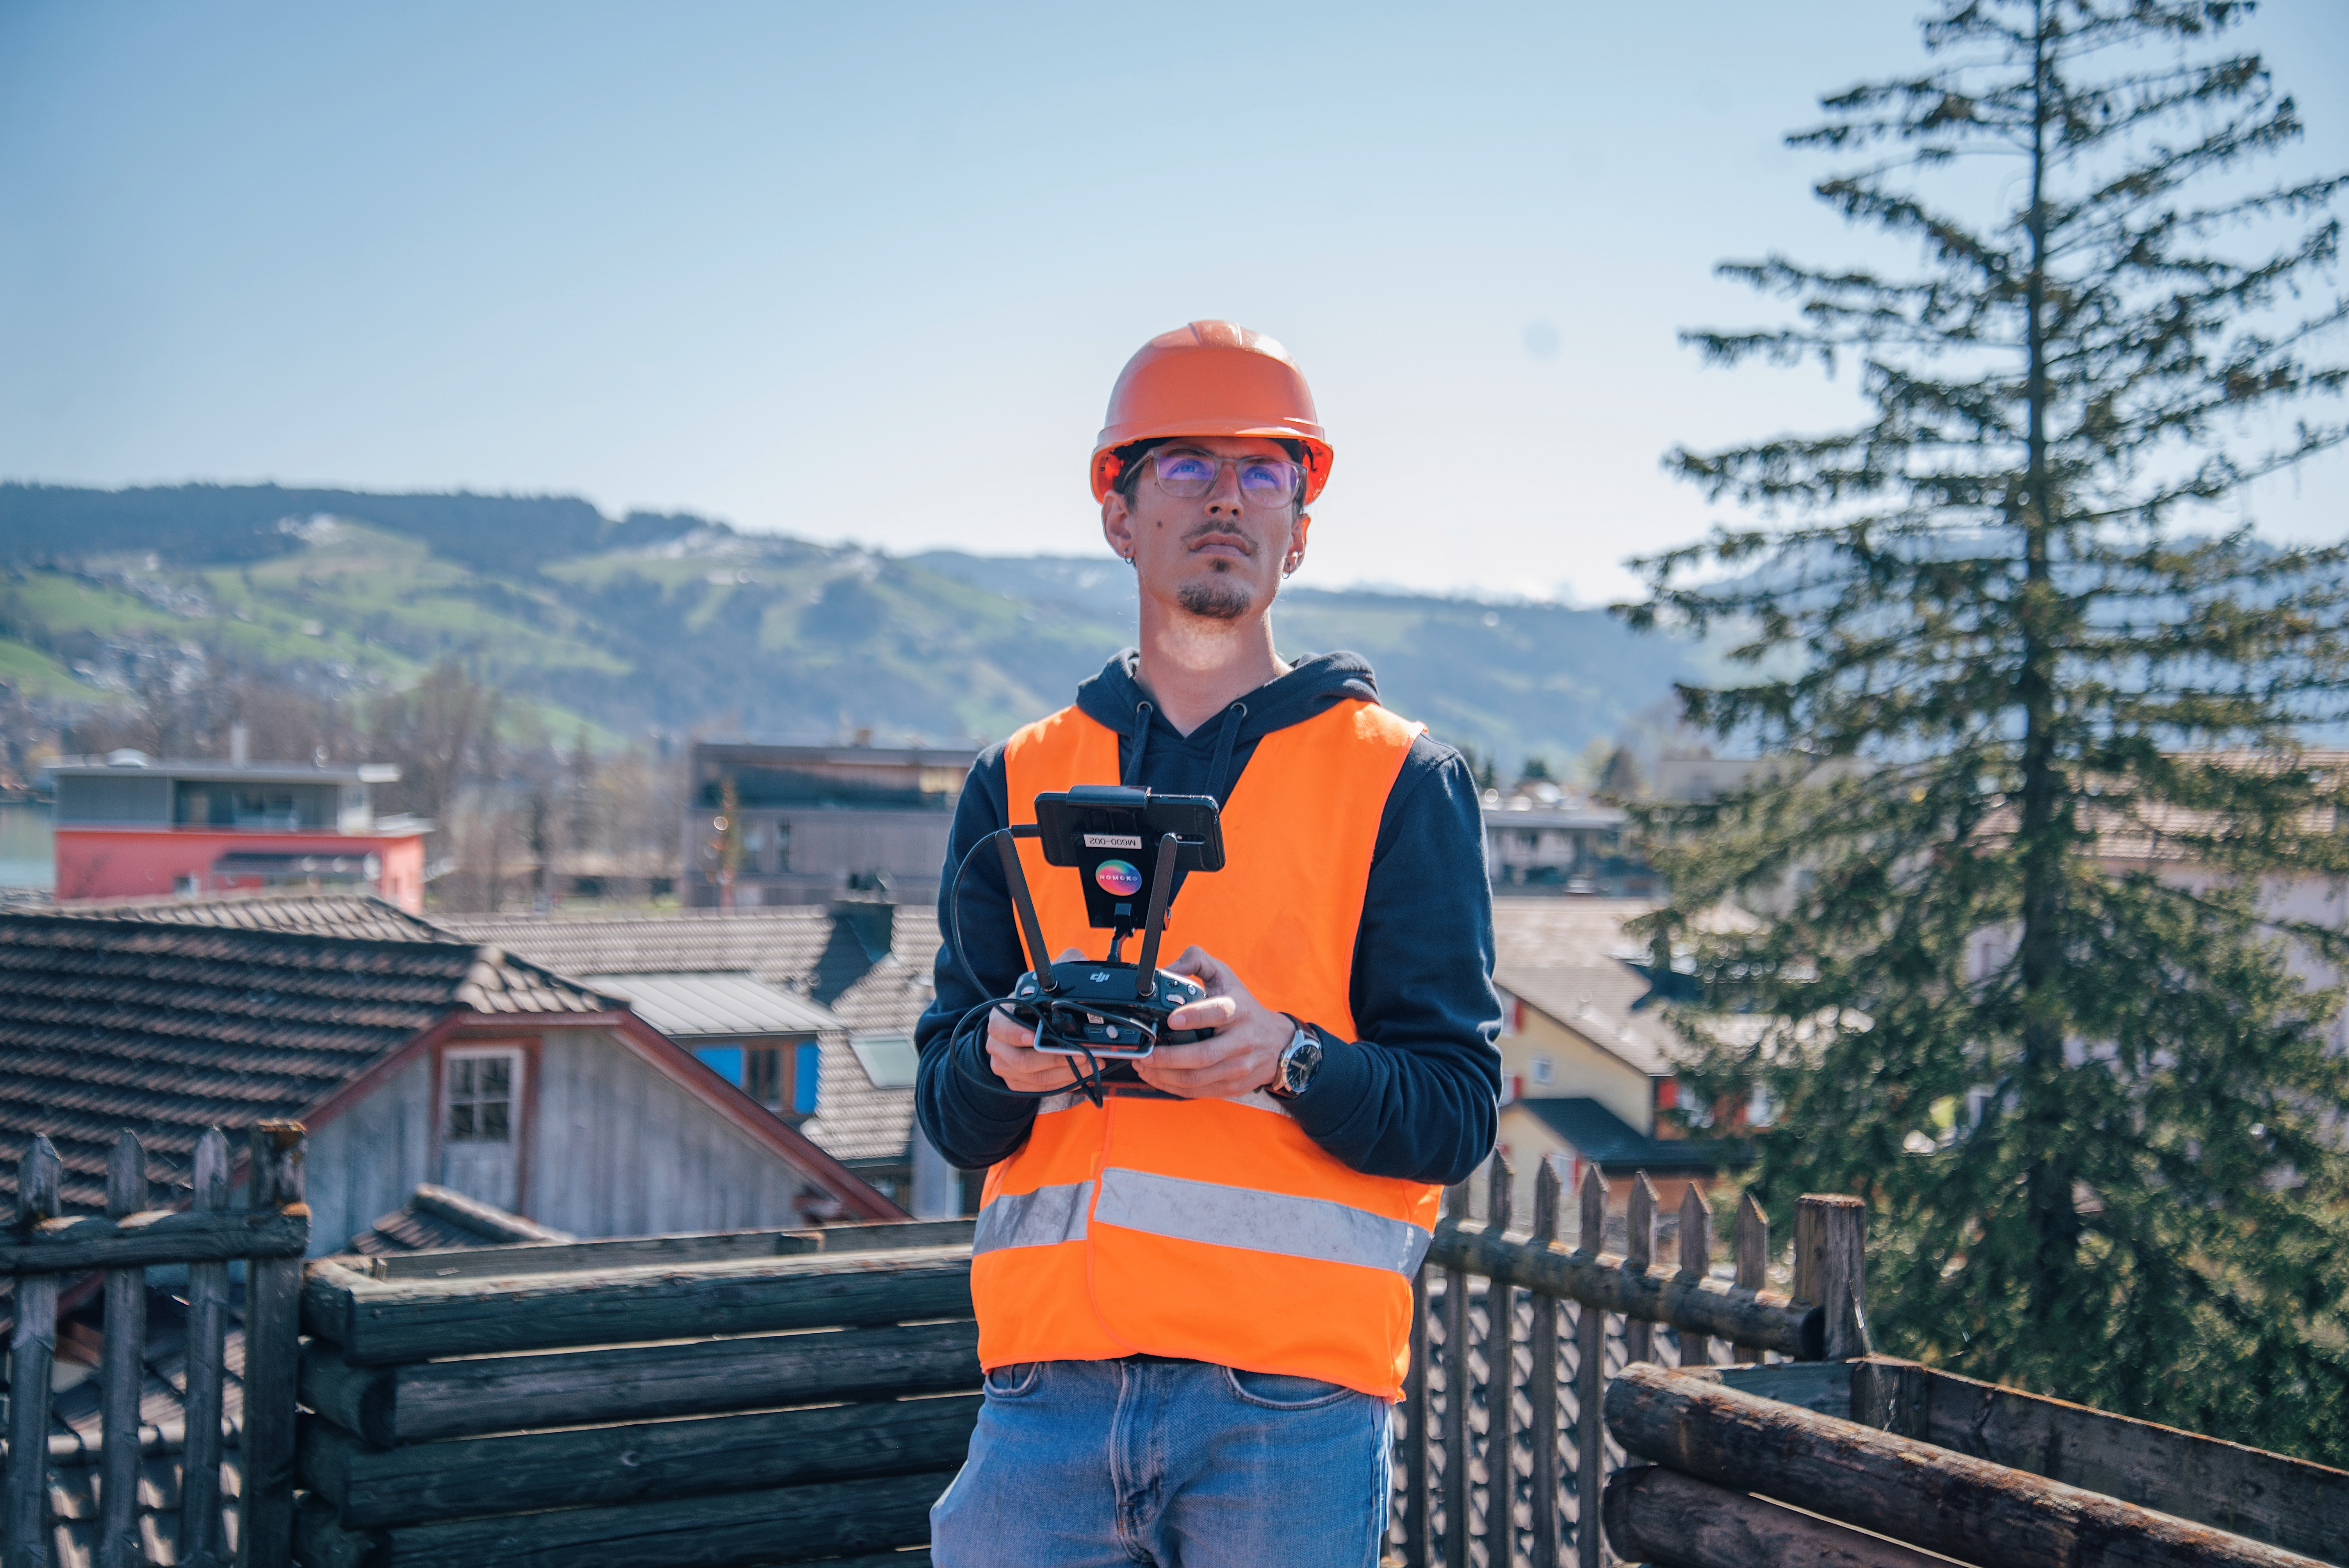 This image shows Nomoko drone pilot Mario flying a drone over a populated area in Switzerland.